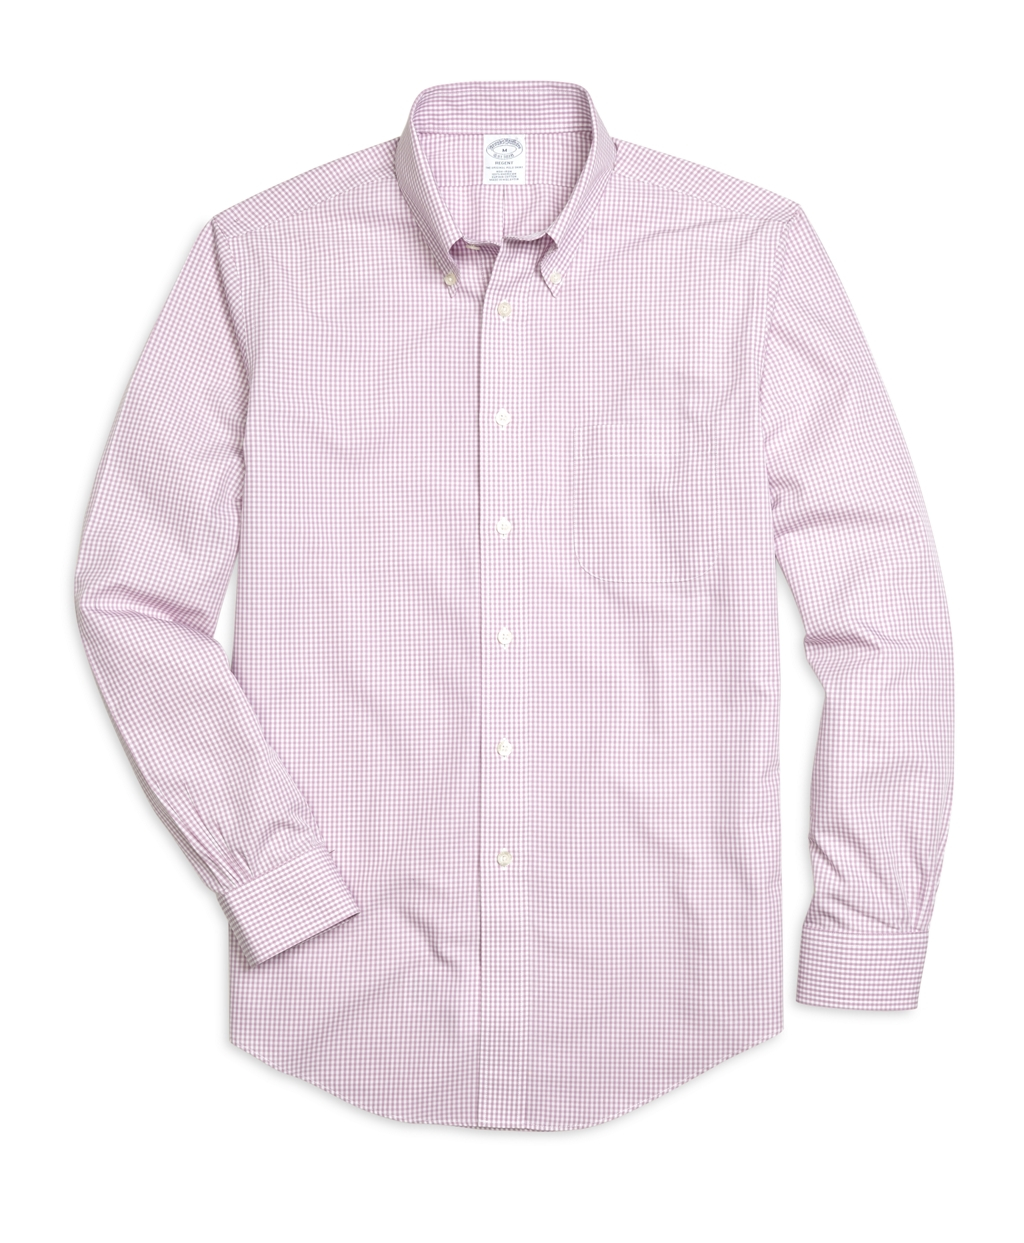 Brooks brothers non iron regent fit micro gingham sport for Brooks brothers non iron shirts review